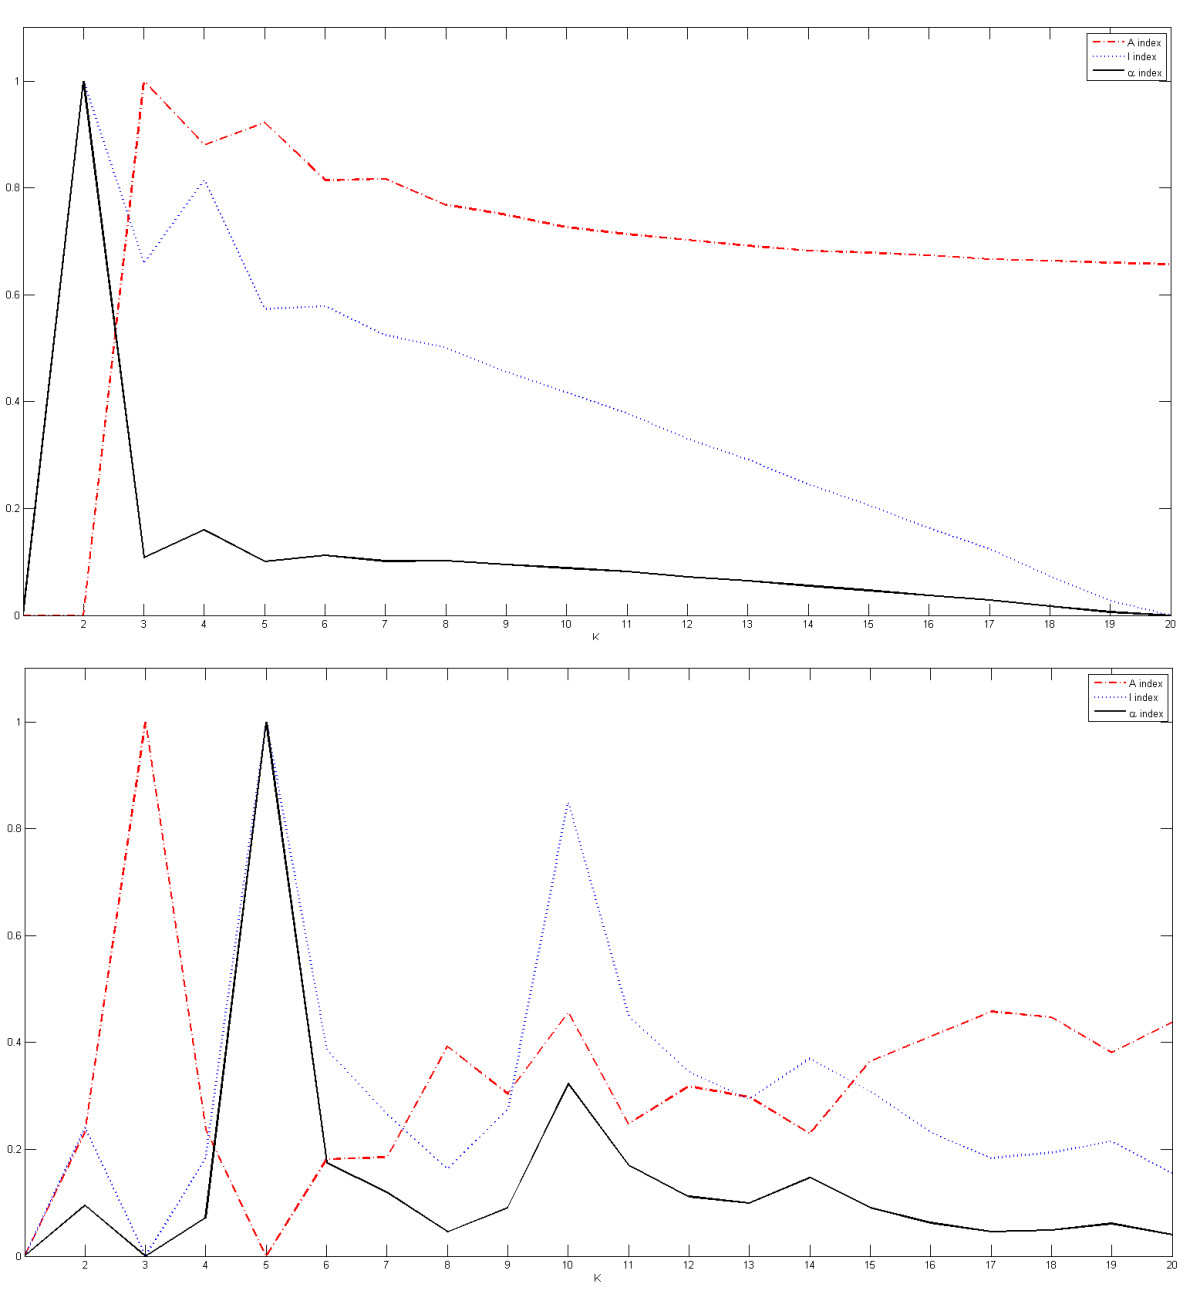 https://static-content.springer.com/image/art%3A10.1186%2F1471-2105-12-113/MediaObjects/12859_2010_Article_4507_Fig7_HTML.jpg